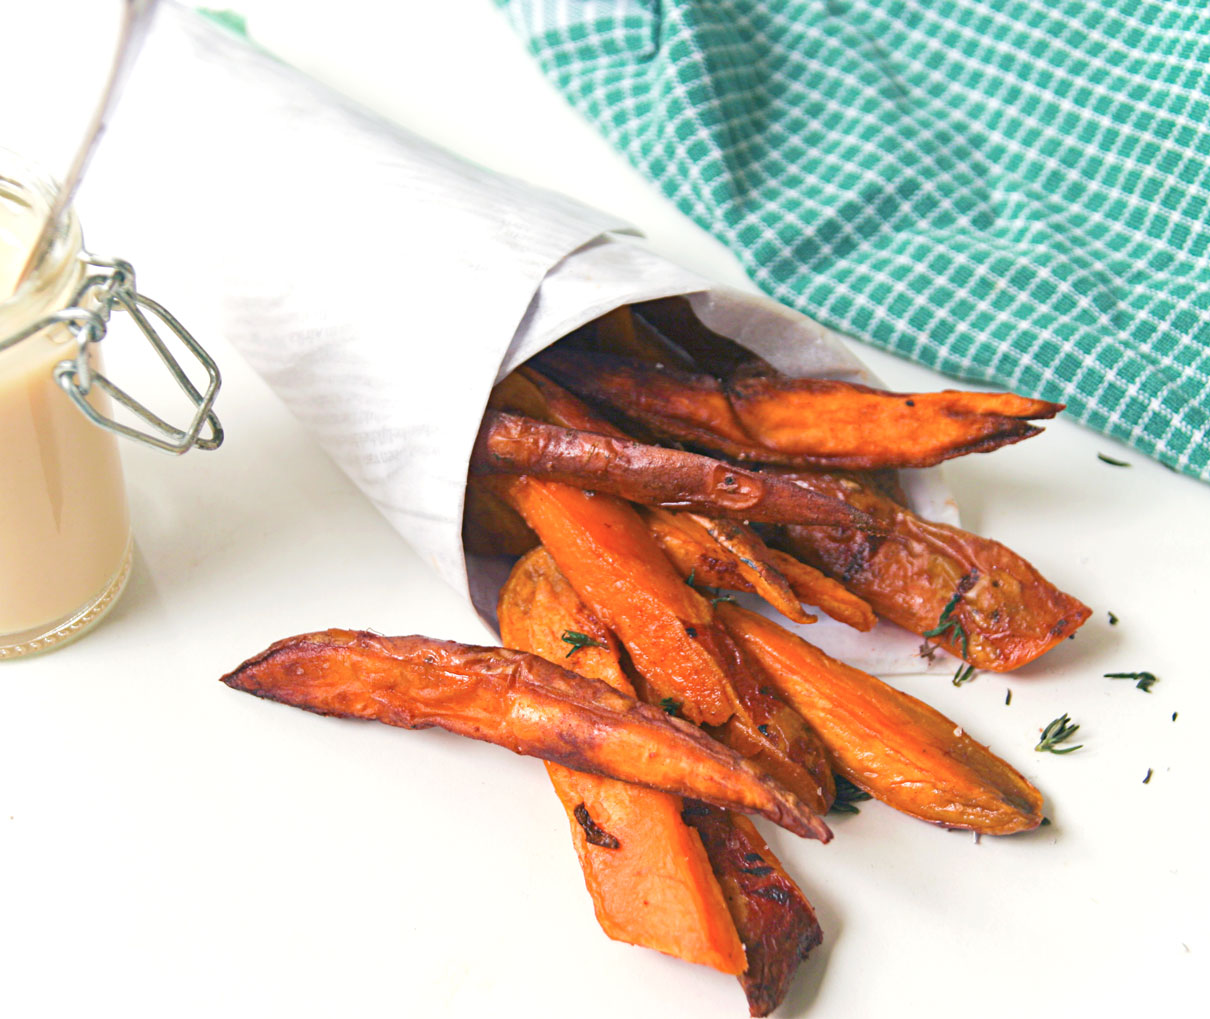 Share Love Not Secets sweet potato fries